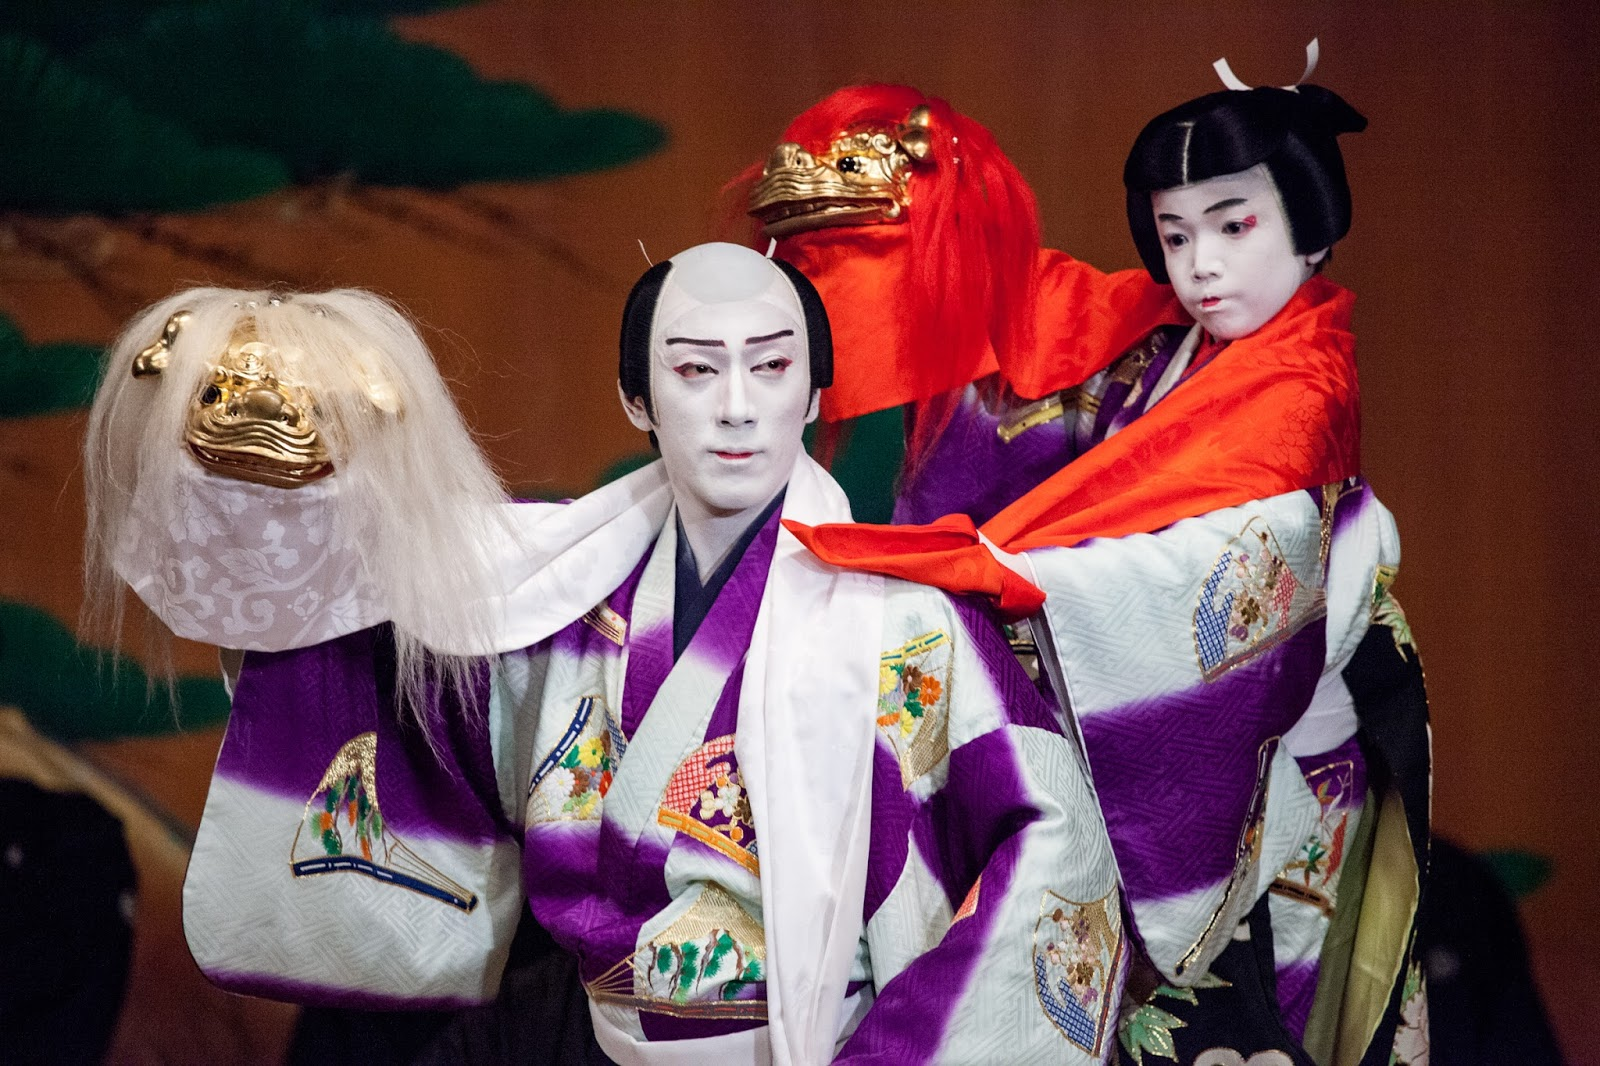 kabuki theater essay A hearing without evidence would be little more than theater by nancy gertner ms gertner is a retired federal judge  runs the risk of being seen as little more than kabuki theater, or,.